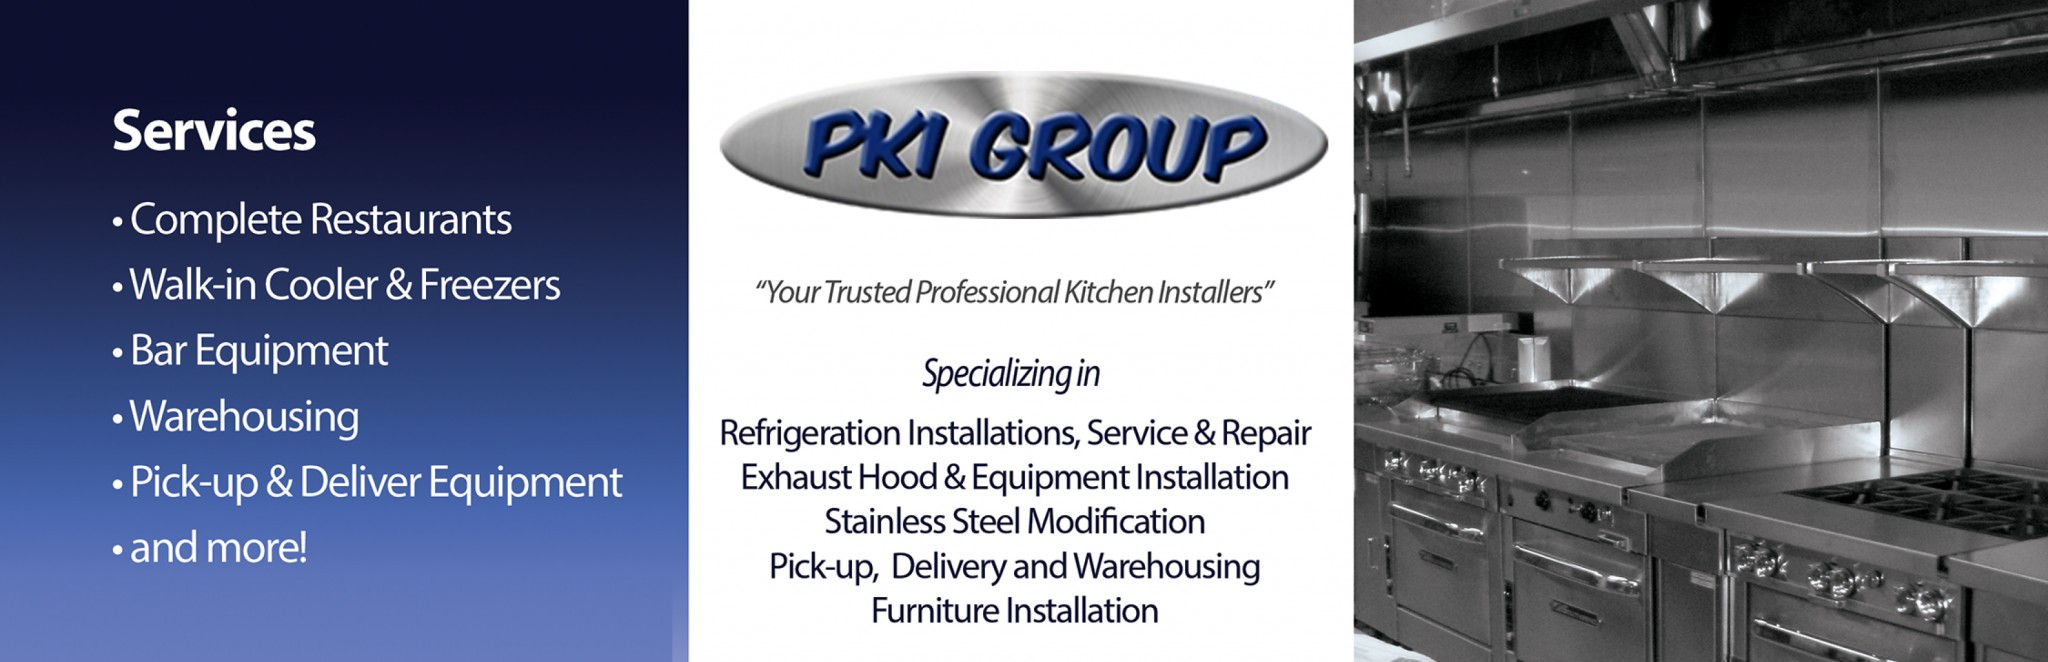 Commercial Kitchen Installers Miramar Fl